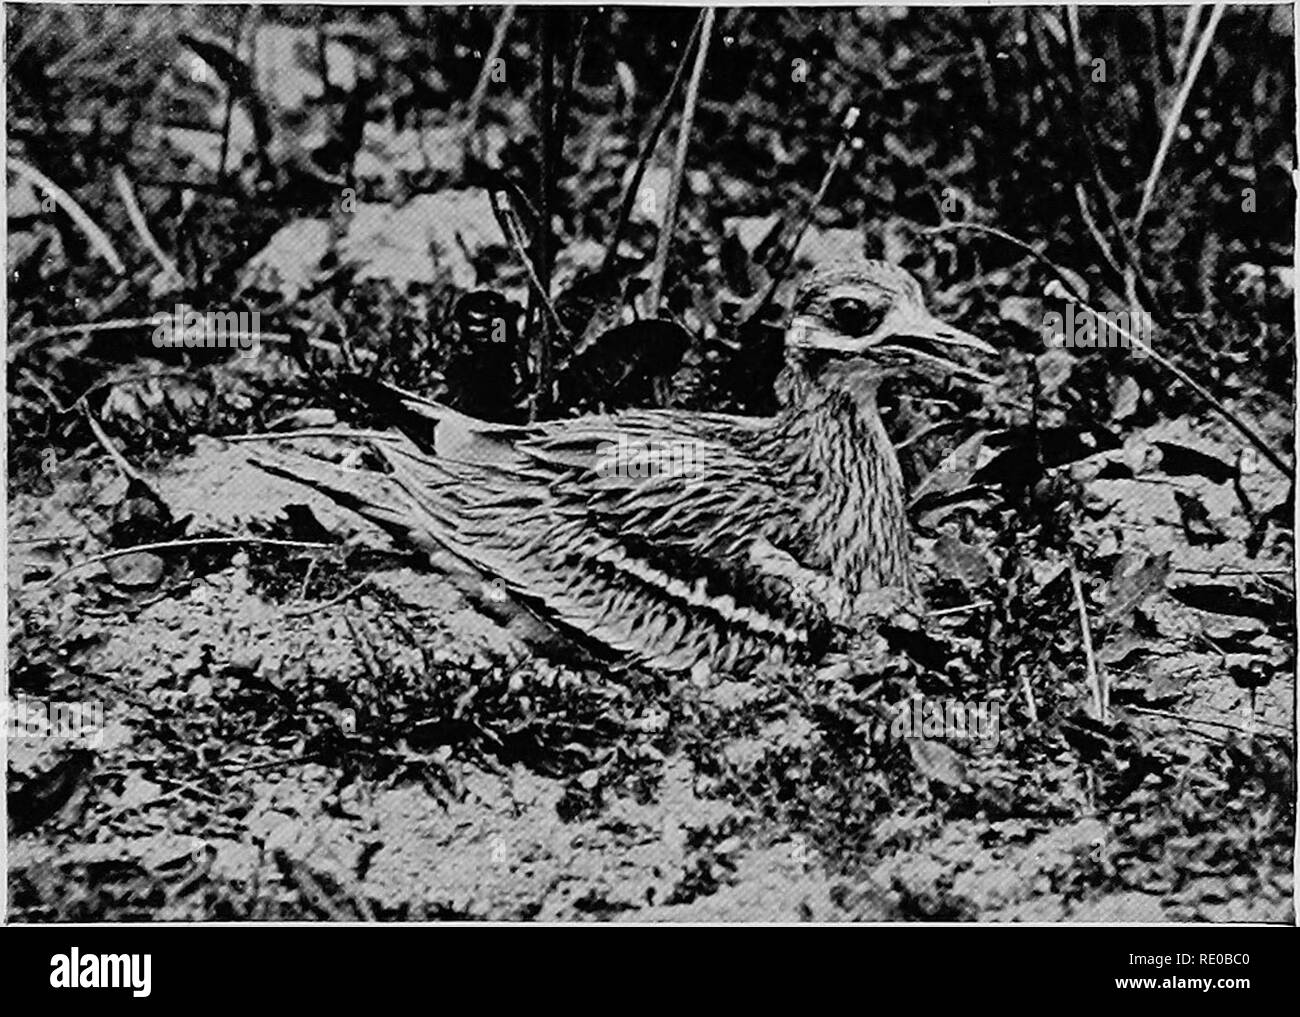 . The infancy of animals. Animal behavior; Natural history. STONE CURLEW BROODING, DISTRESSED BY HEAT. That brooding birds are greatly distressed by long exposure to the sun has only recently been discovered. The open mouth and uplifted feathers are sure signs of this.. Please note that these images are extracted from scanned page images that may have been digitally enhanced for readability - coloration and appearance of these illustrations may not perfectly resemble the original work.. Pycraft, W. P. , (William Plane), b. 1868. London, Hutchinson & Co. - Stock Image